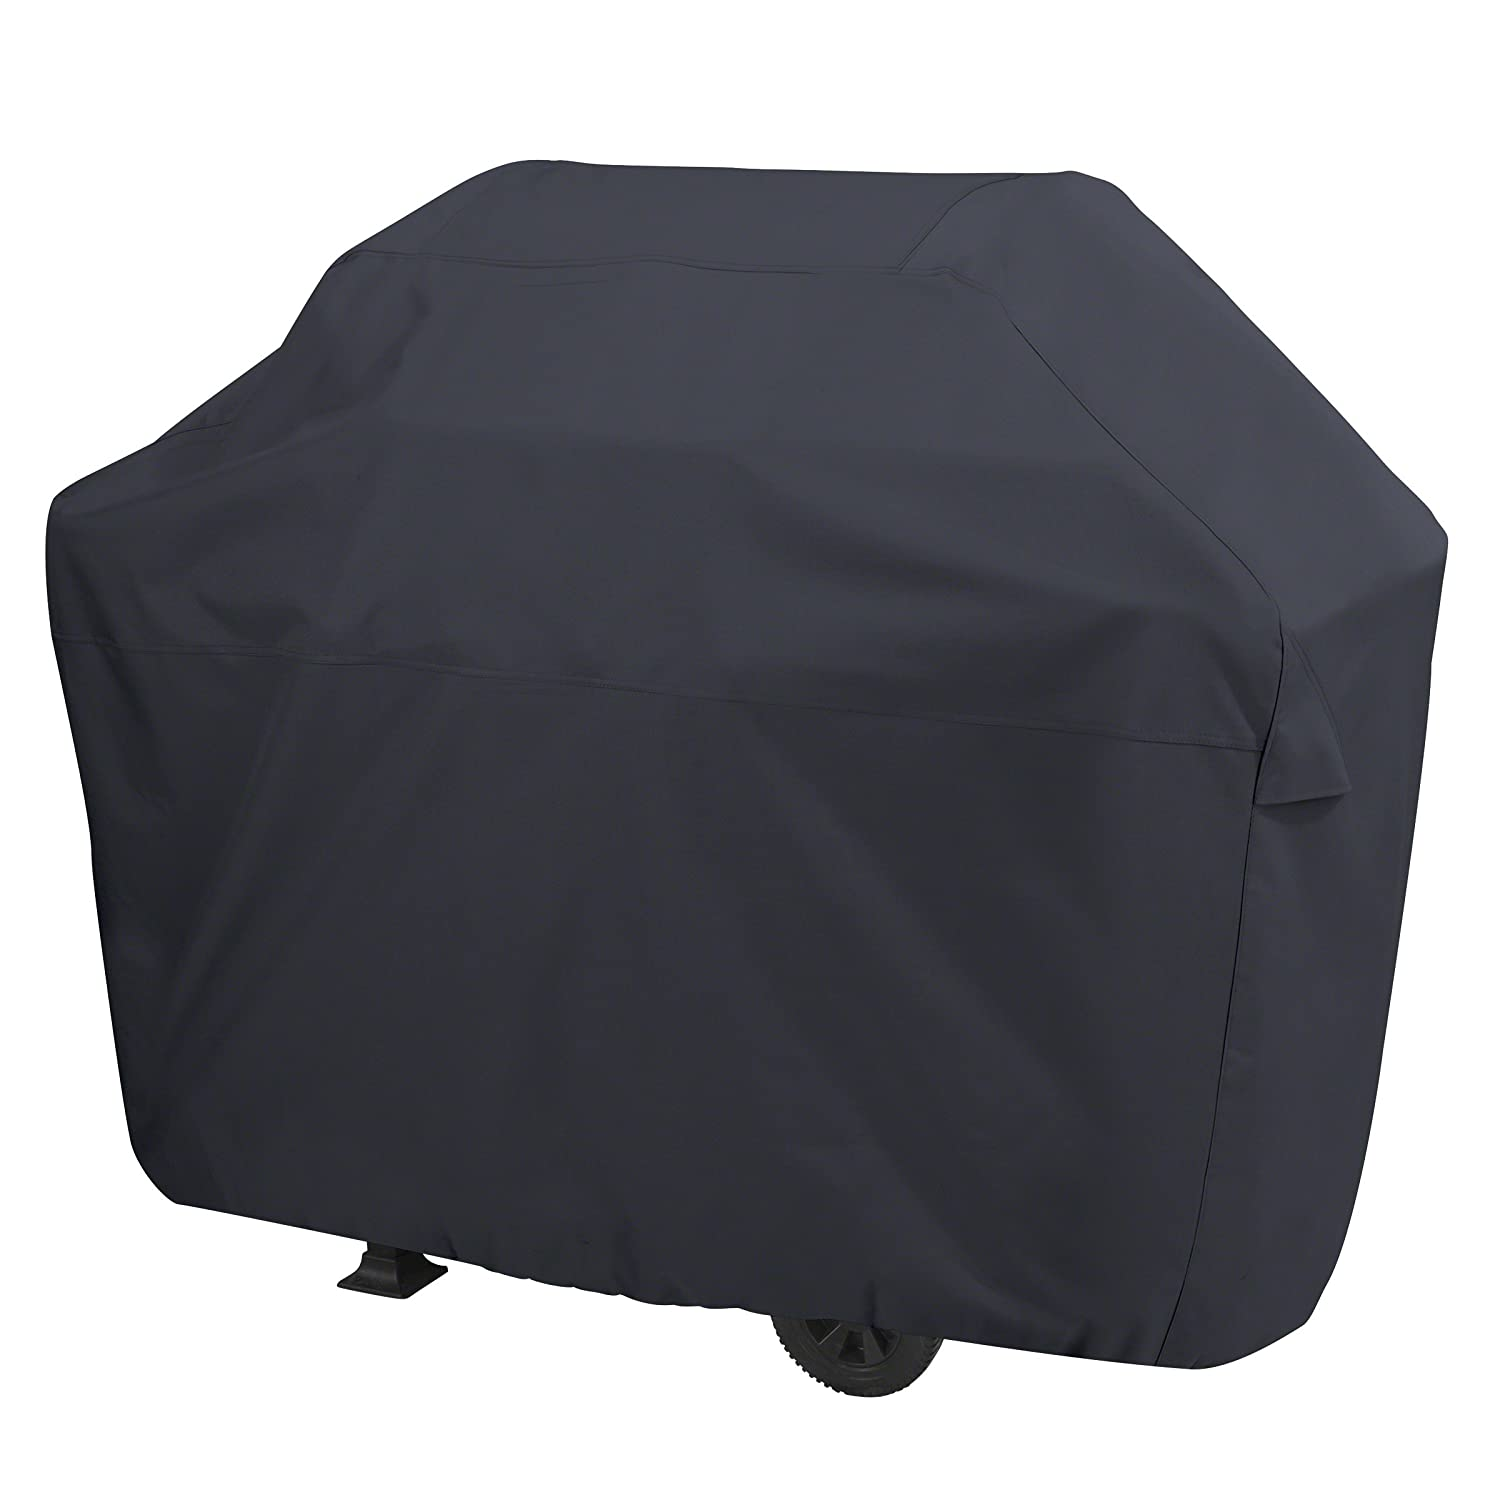 AmazonBasics Gas Grill Cover - Large, Black